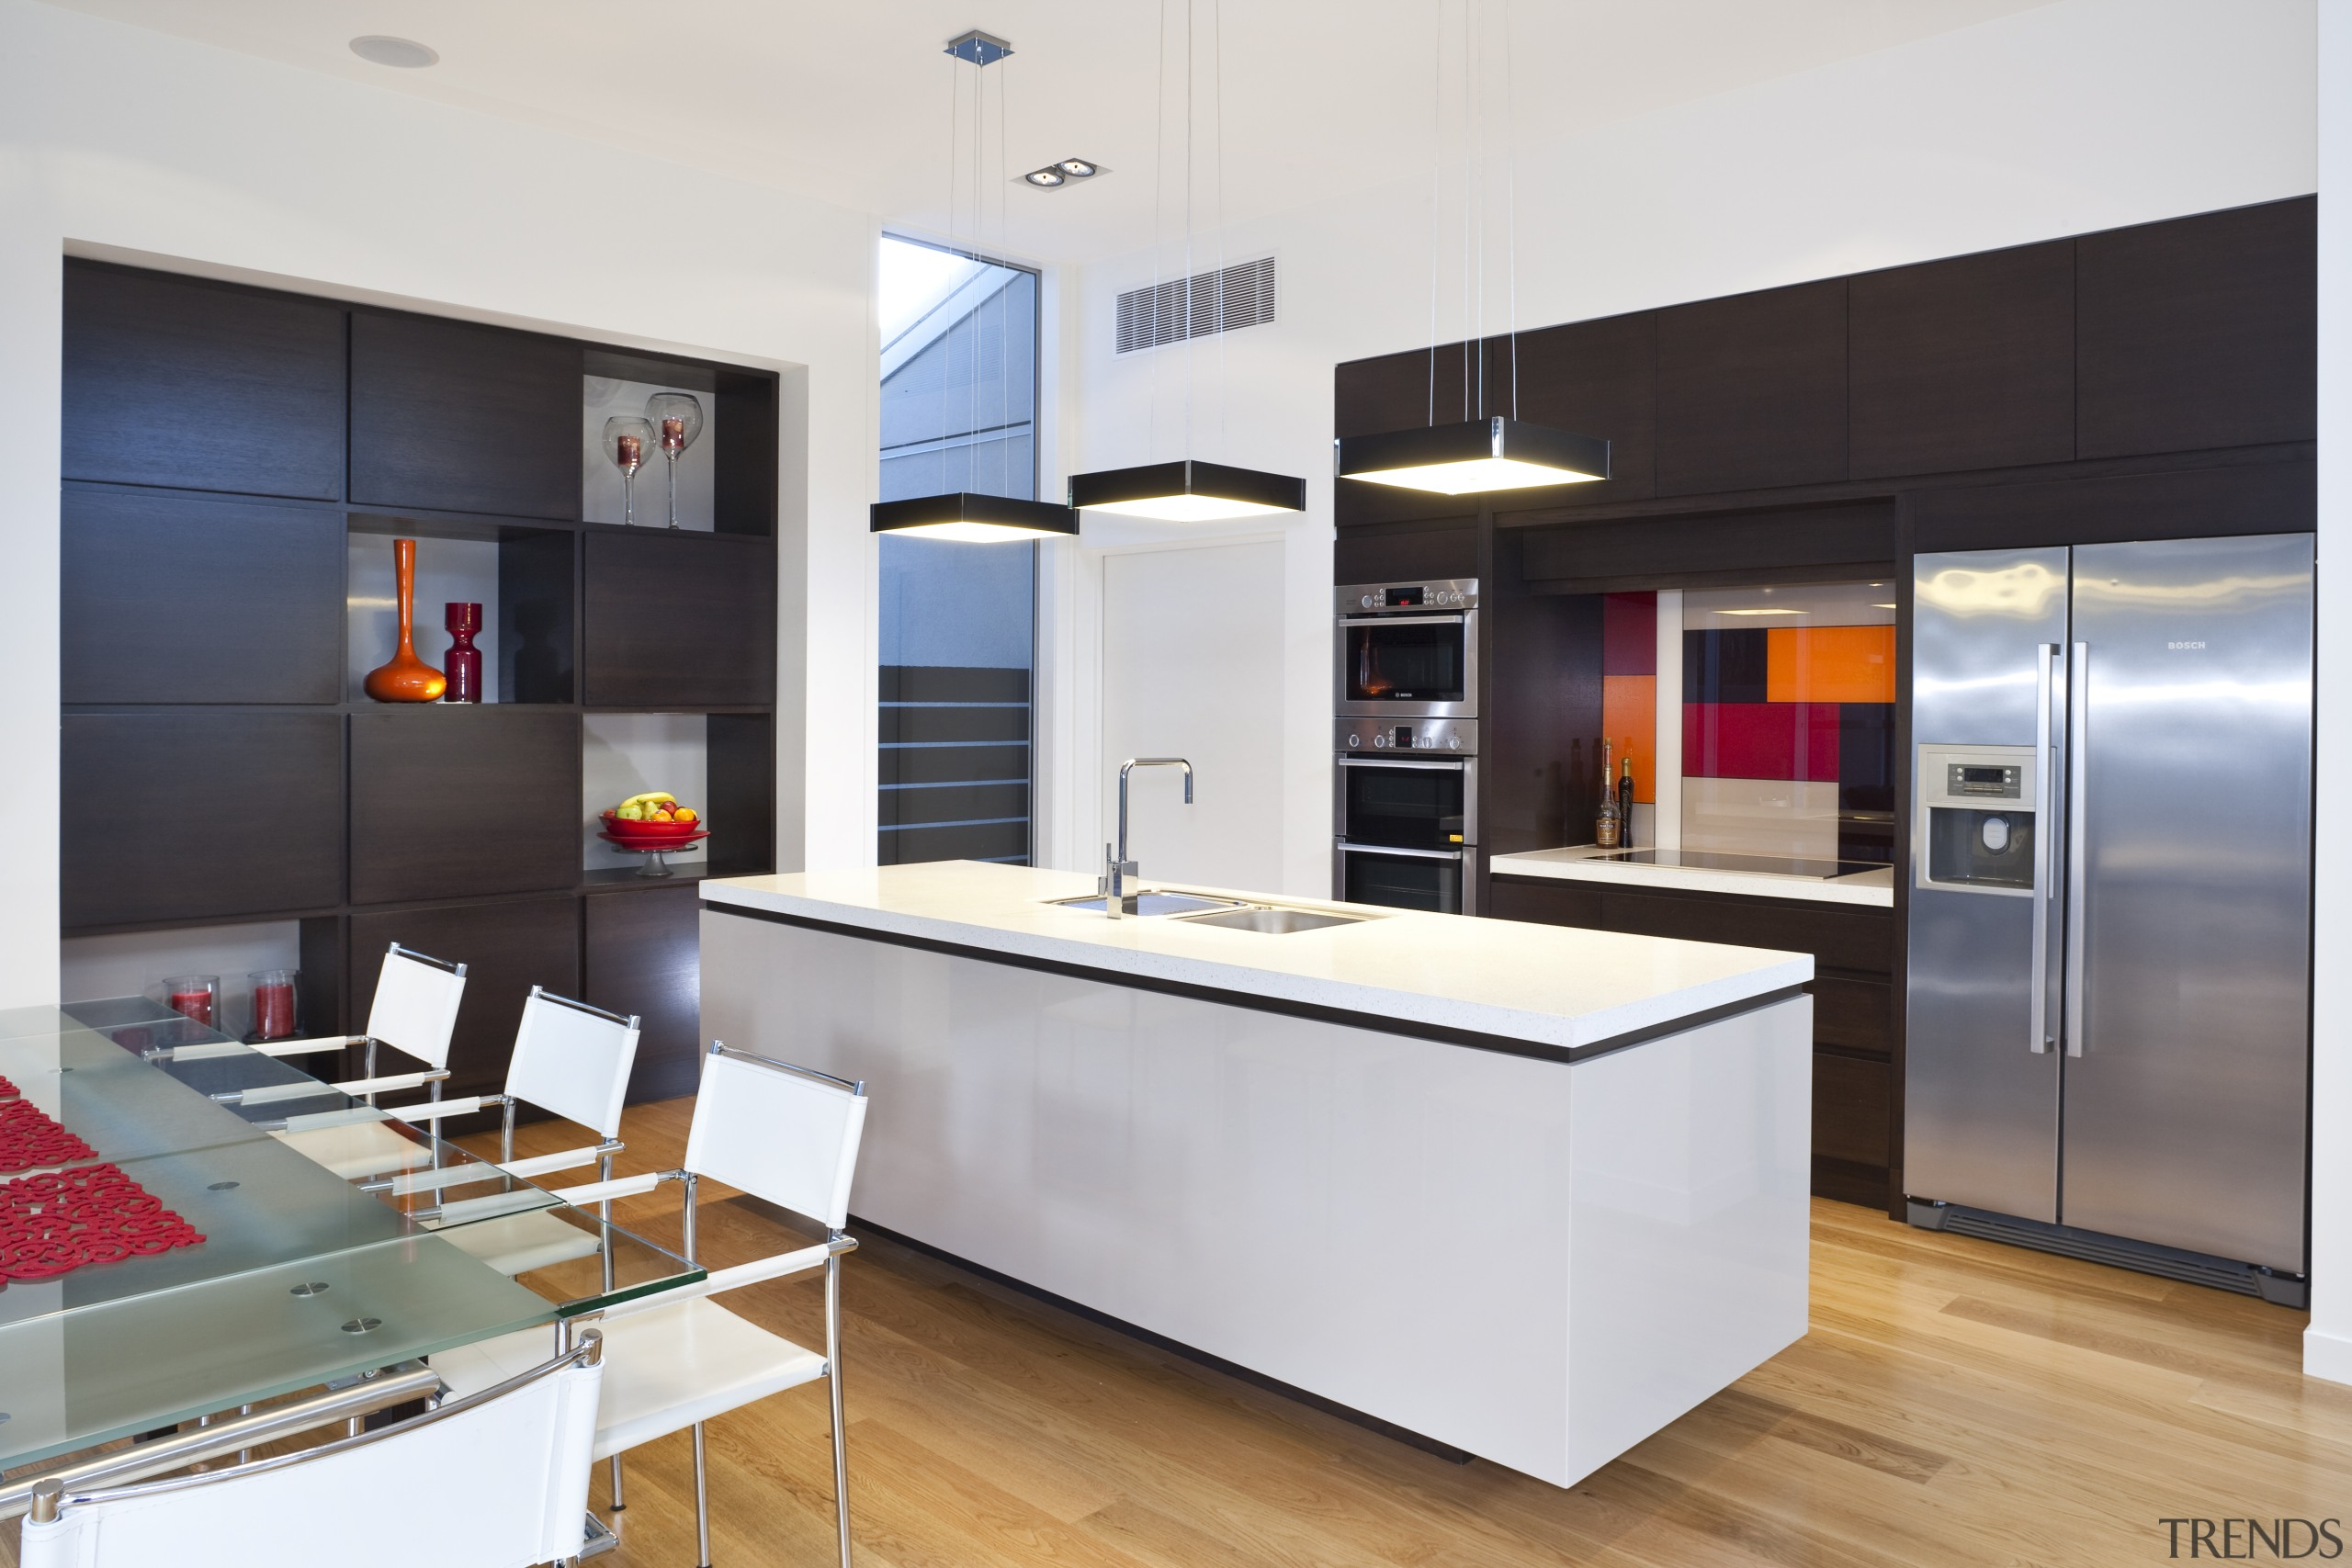 This upmarket bespoke cabinetry project by RH Cabinetmakers countertop, kitchen, white, cabinetry, storage, timber, bespoke cabinetry, RH Cabinetmakers